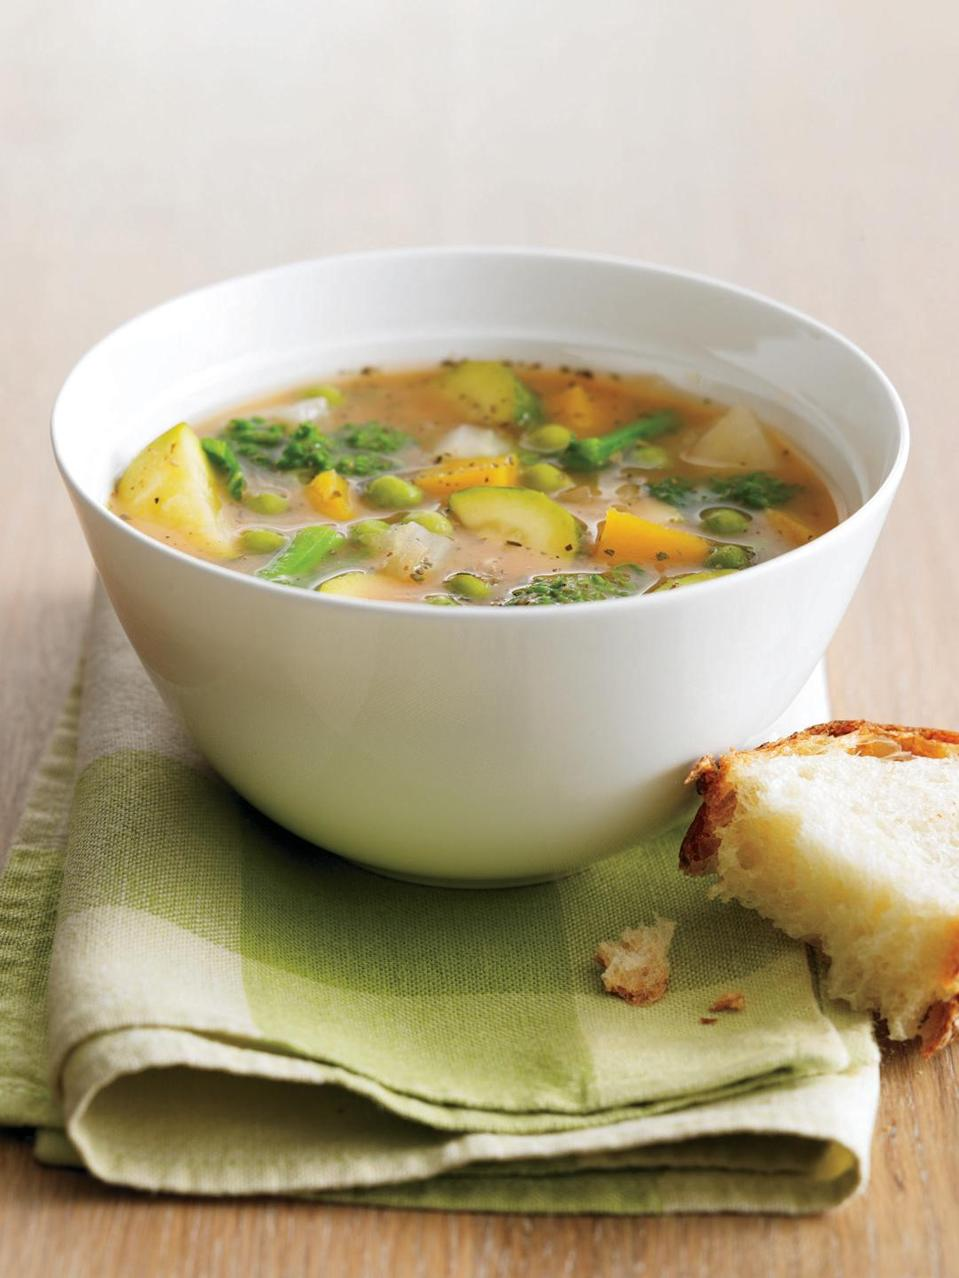 """<p>You won't be short on vitamins and other essential nutrients with this loaded vegetable soup. But what sets this apart from other veggie soups: the spicy Italian seasoning. </p><p><em><a href=""""https://www.womansday.com/food-recipes/food-drinks/recipes/a11458/loaded-veggies-soup-recipe-122750/"""" rel=""""nofollow noopener"""" target=""""_blank"""" data-ylk=""""slk:Get the Loaded Vegetable Soup recipe."""" class=""""link rapid-noclick-resp"""">Get the Loaded Vegetable Soup recipe. </a></em></p>"""